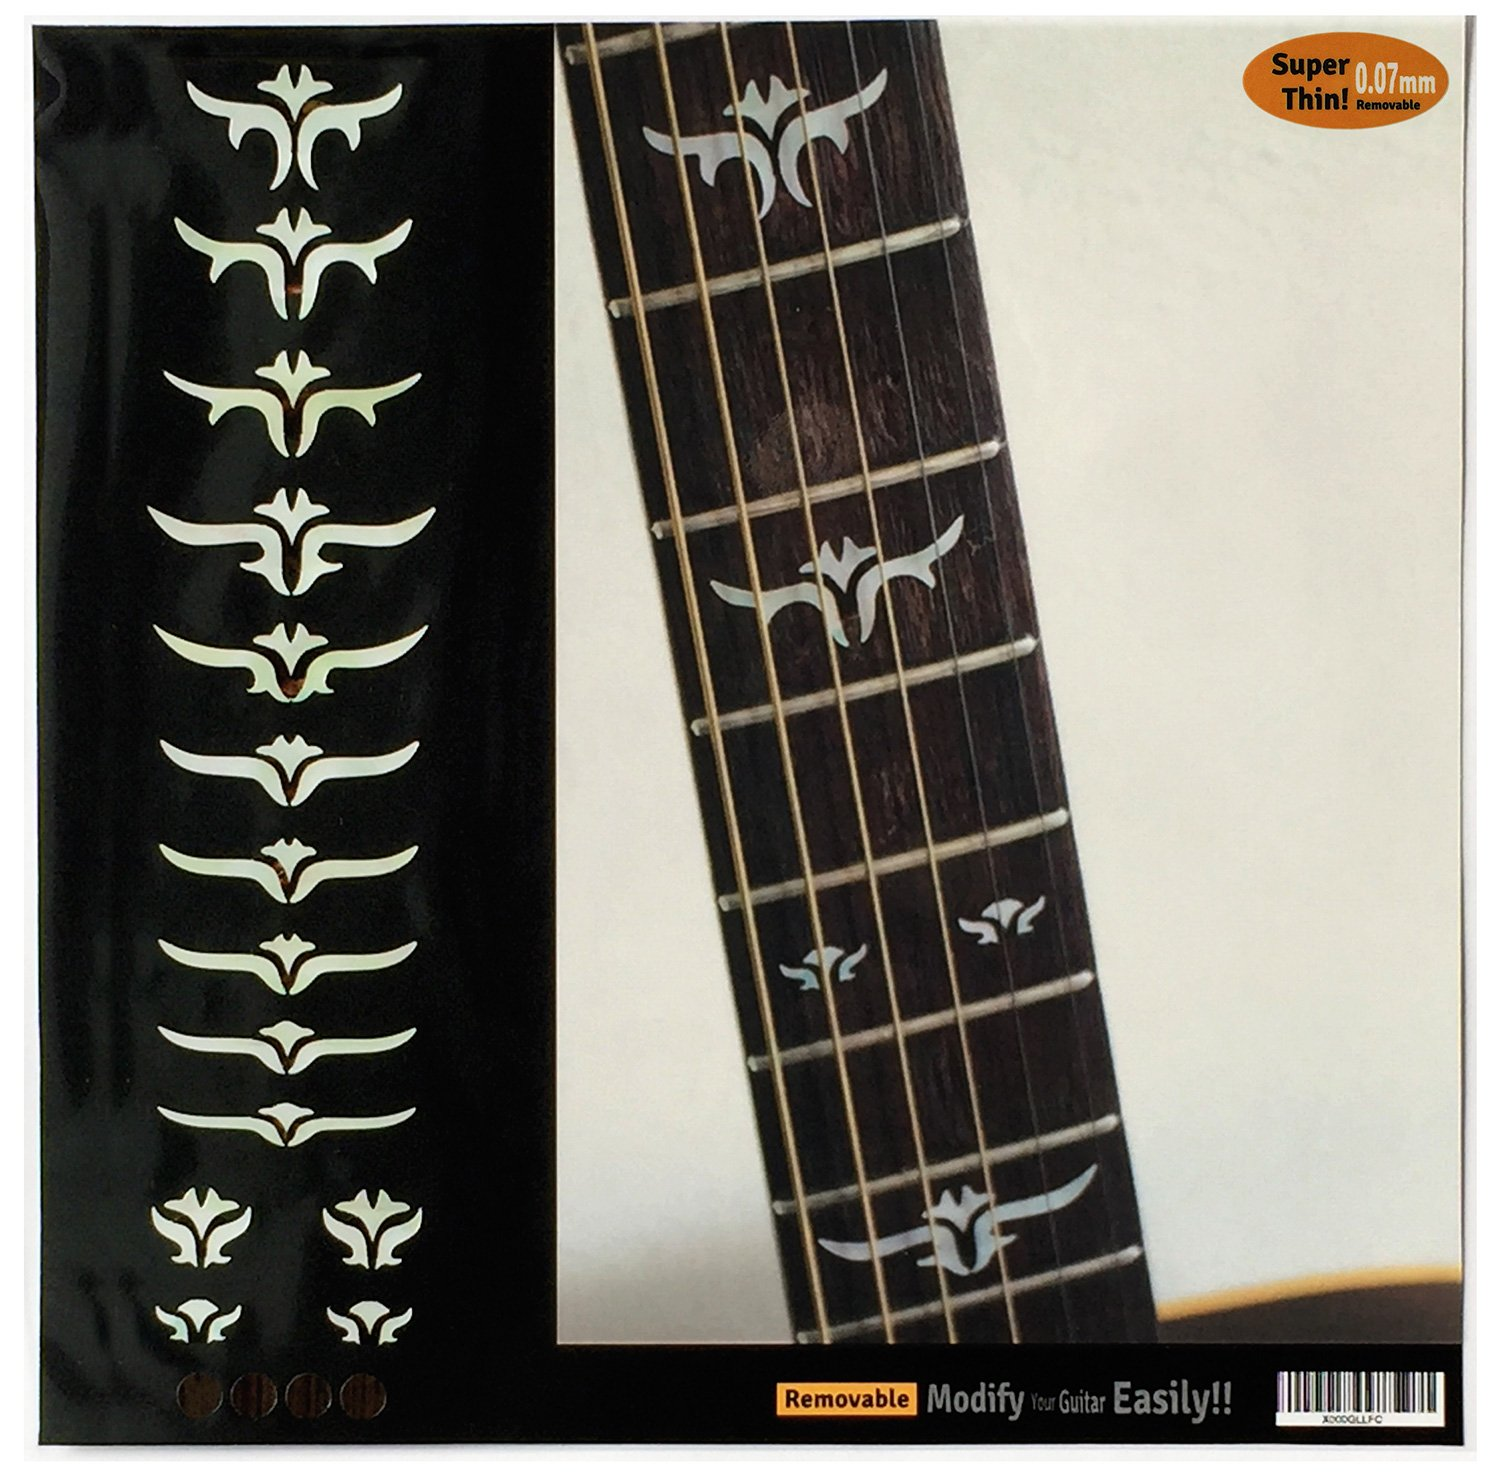 Fretboard Markers Inlay Sticker Decals for Guitar Bass - Tailored Leaves (WS) jockomo F-100TL-WT